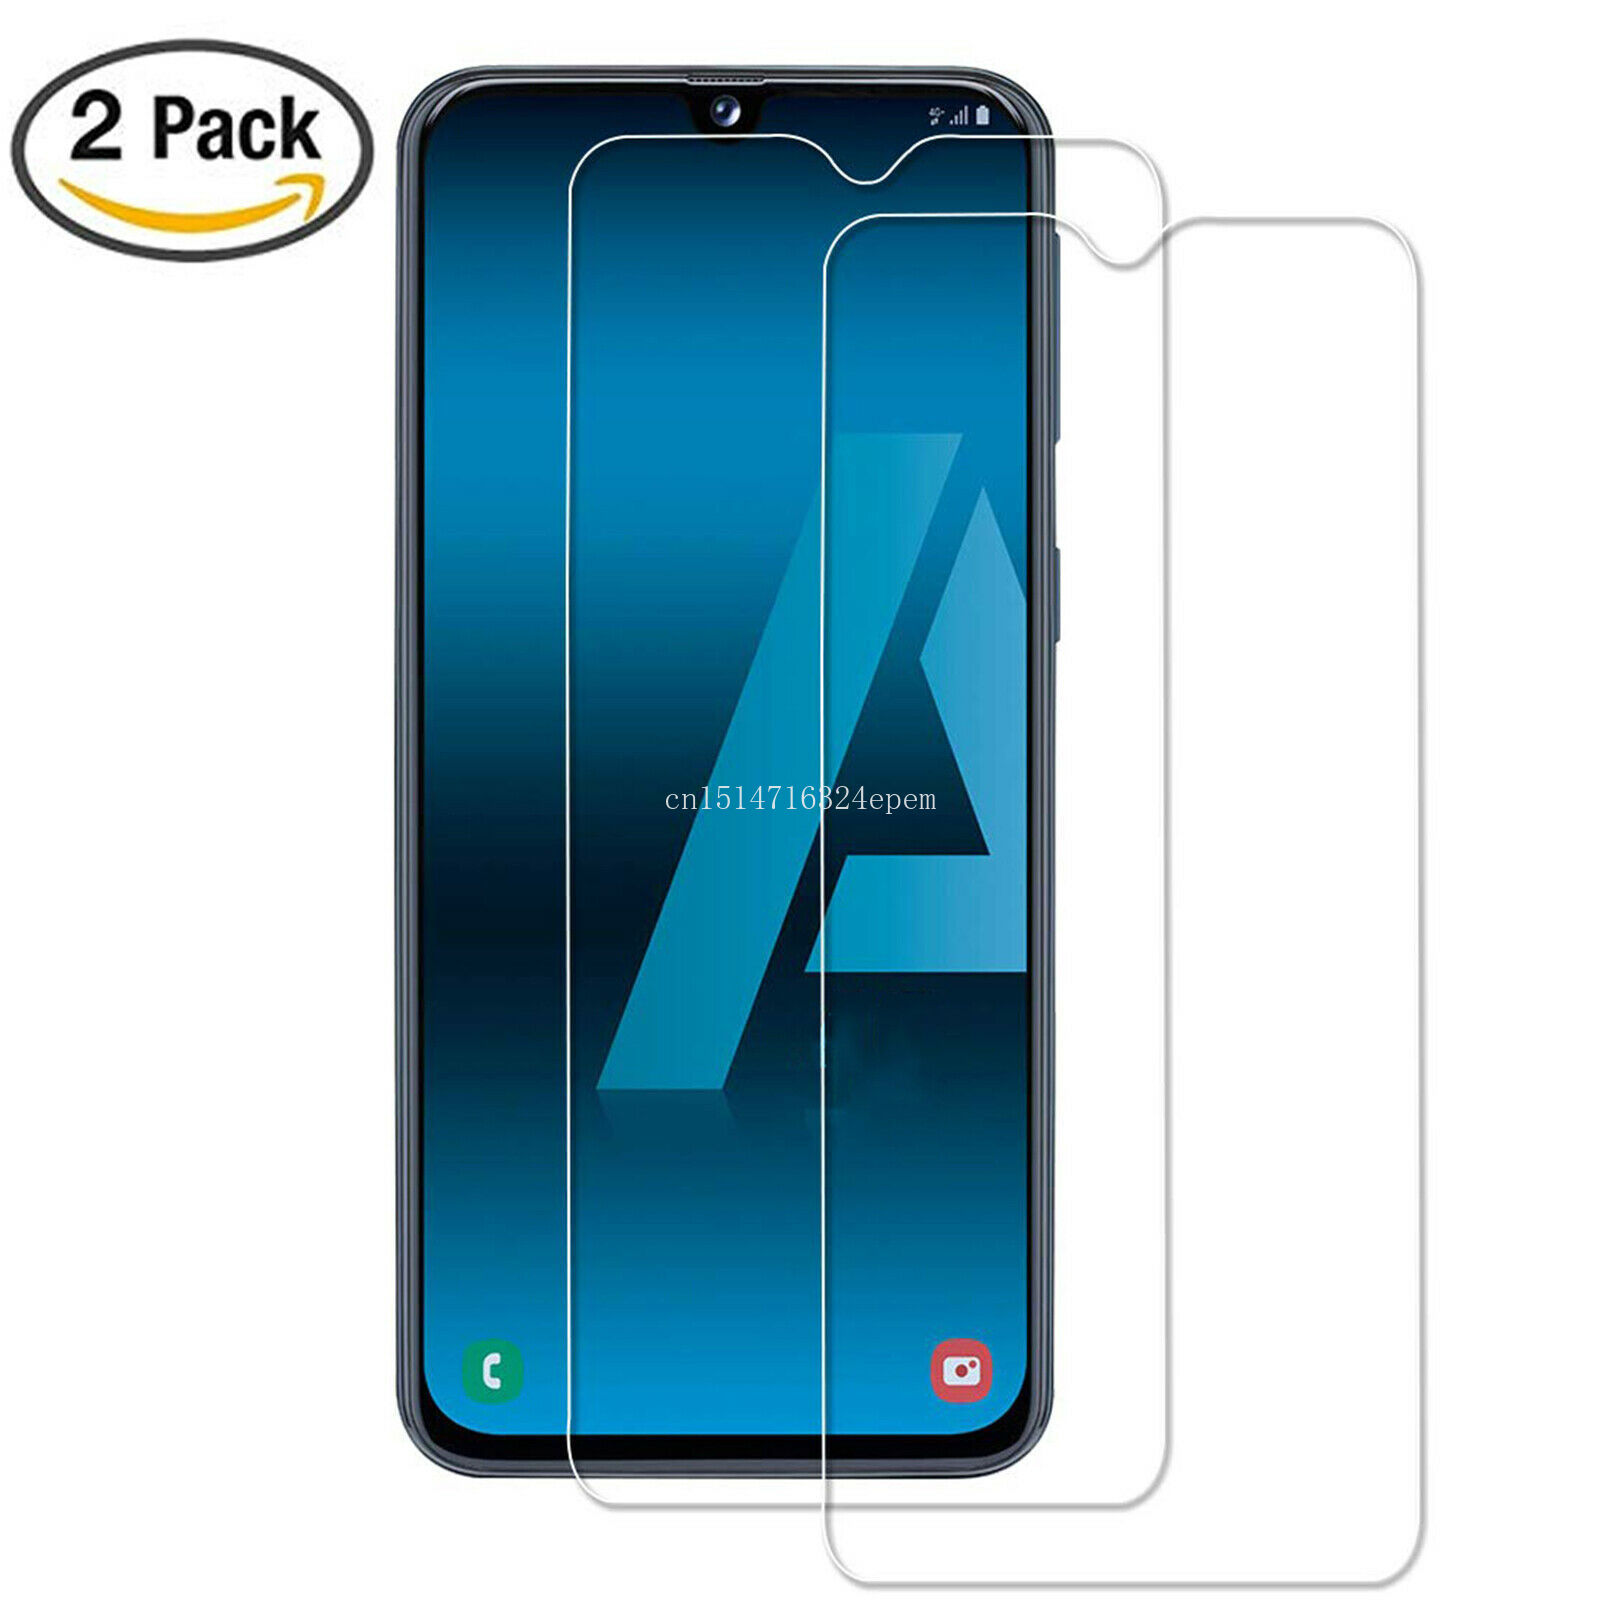 2Pcs Tempered Glass For Samsung Galaxy A30 A50 Screen Protector 9H Safety Protective Film On  A70 A40 A60 A90 M10 M20 M30 A10